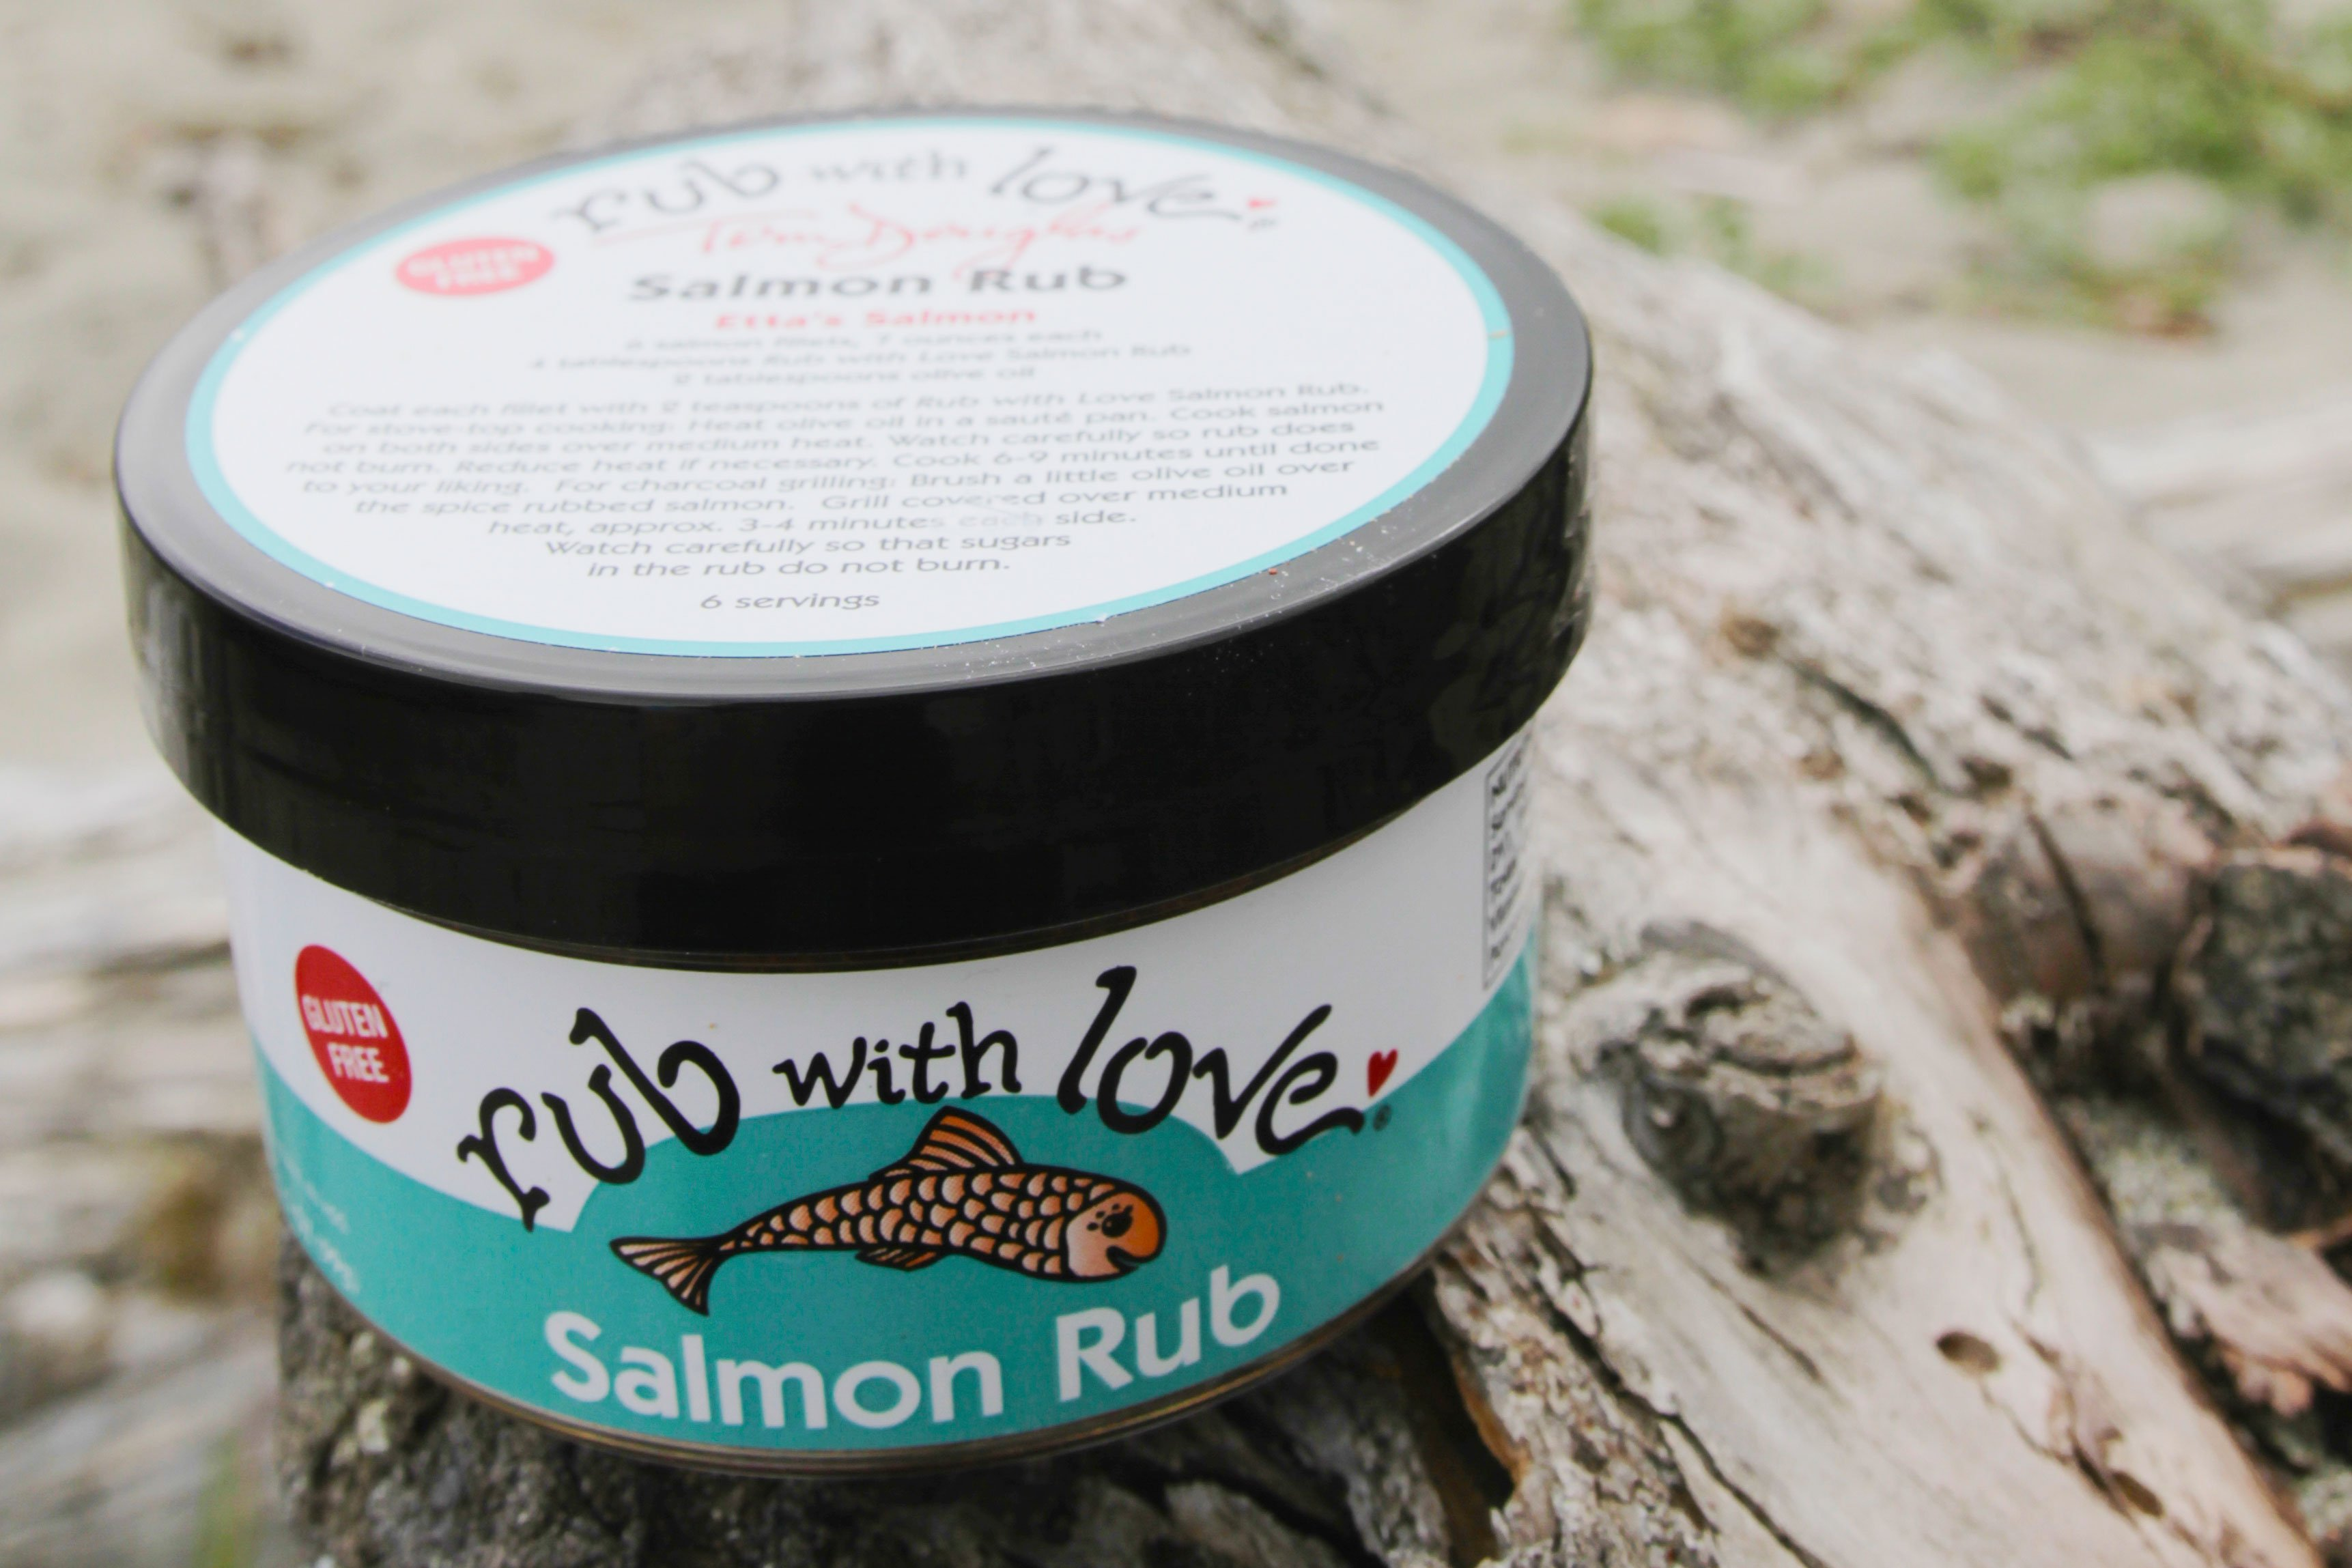 Rub with Love ~ Salmon Rub